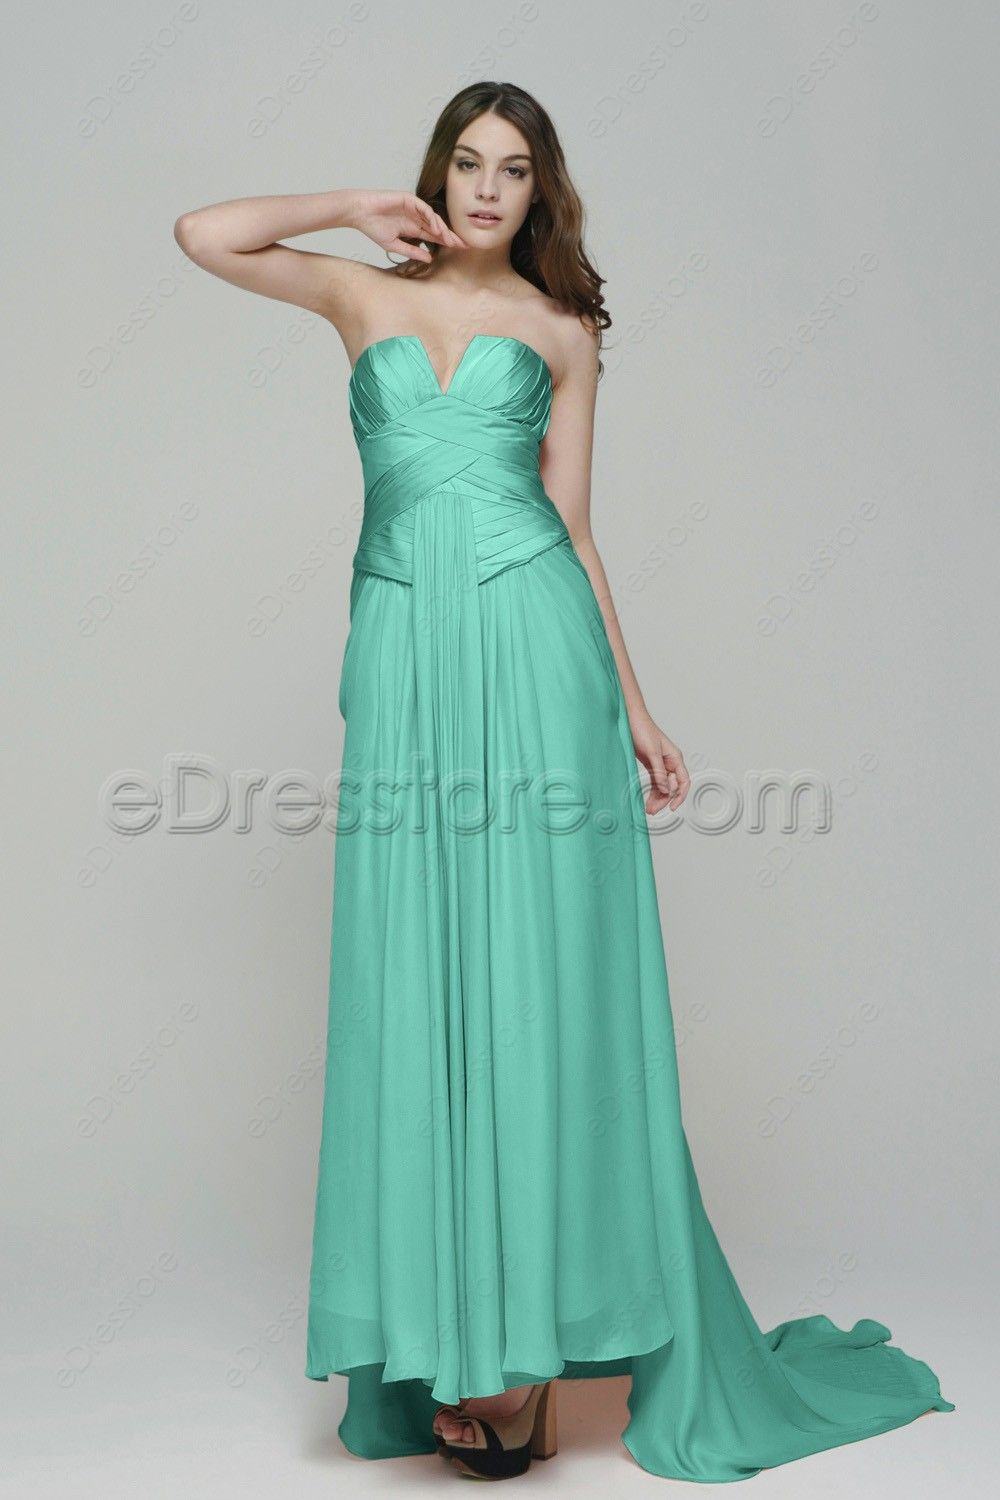 Notched neckline mint green evening dresses with train green